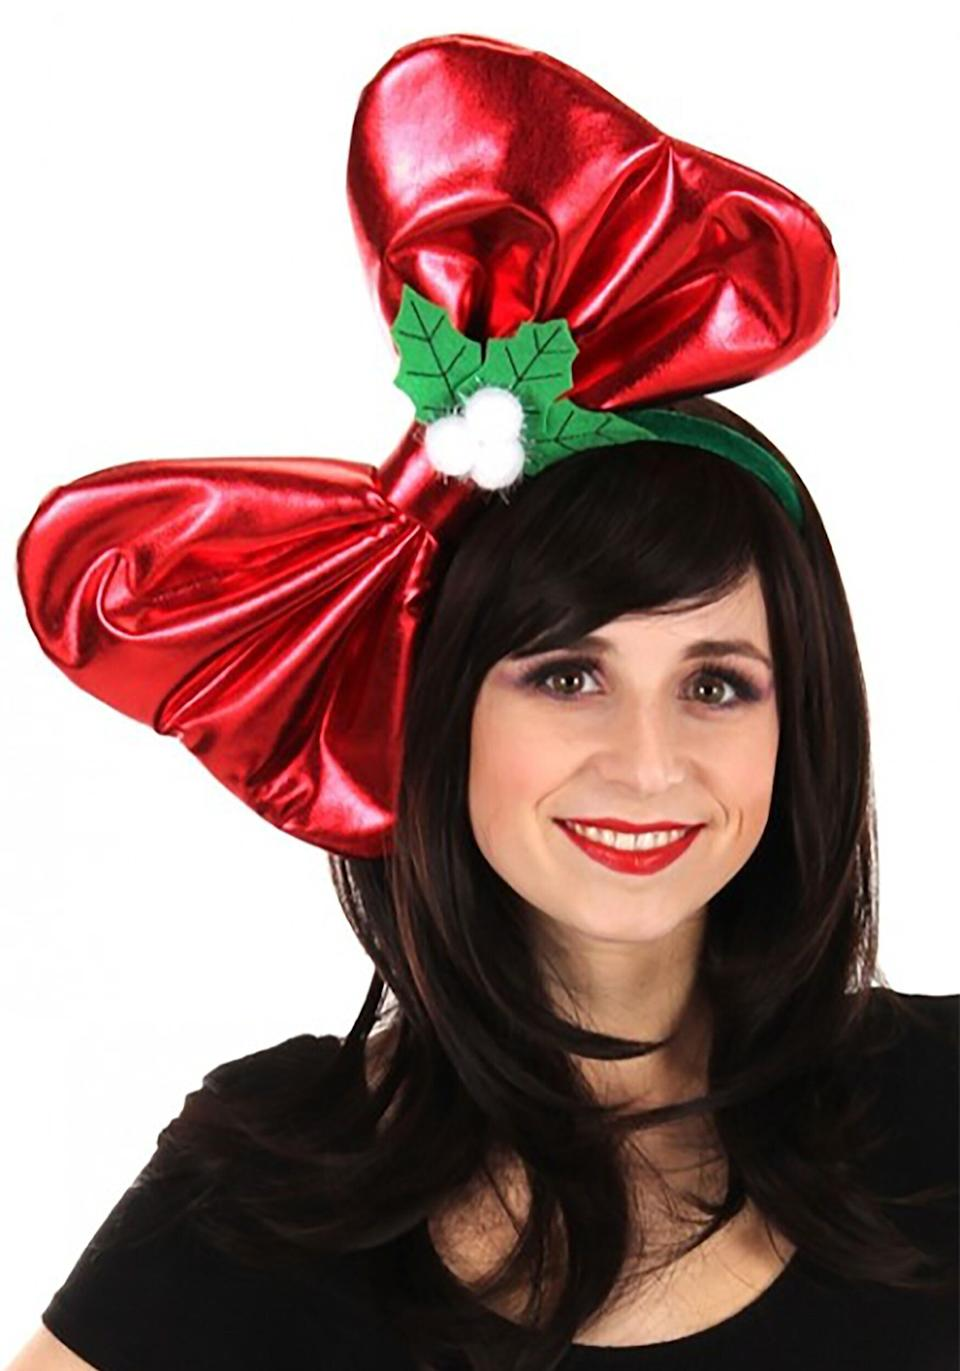 """""""Wow! That's a<a href=""""https://www.halloweencostumes.com/giant-christmas-bow-headband.html"""" target=""""_blank"""" rel=""""noopener noreferrer""""> really big bow</a> on your head.""""<br />""""Thank you!""""<br />""""I mean, it's really a large bow.""""<br />""""Yes, yes it is.""""<br />""""So, is there anything else interesting about you about besides this really large bow on your head?""""<br />""""Not really!"""""""